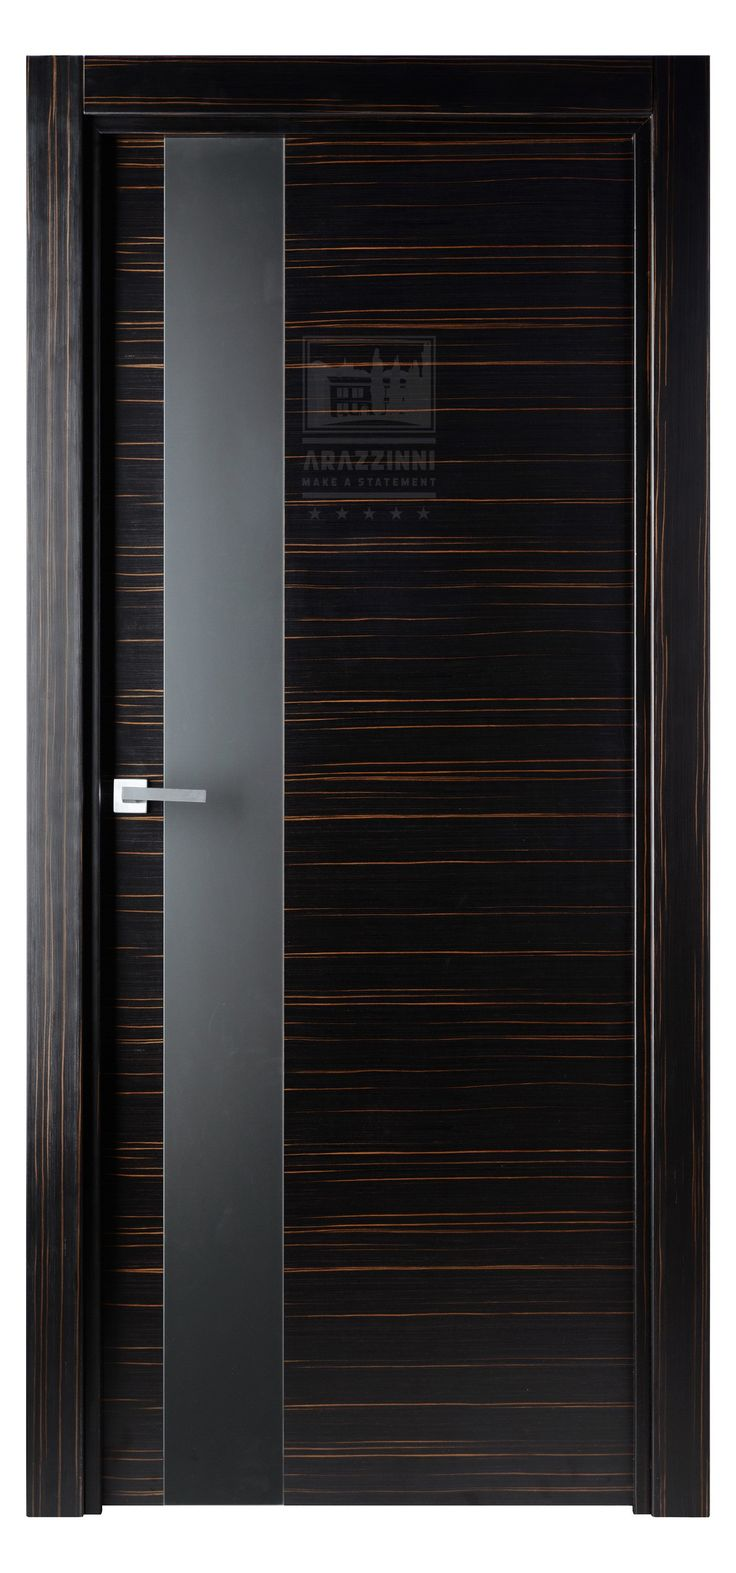 flora 03 interior door macassar exotic wood veneer doors pinterest portes porte bois et. Black Bedroom Furniture Sets. Home Design Ideas